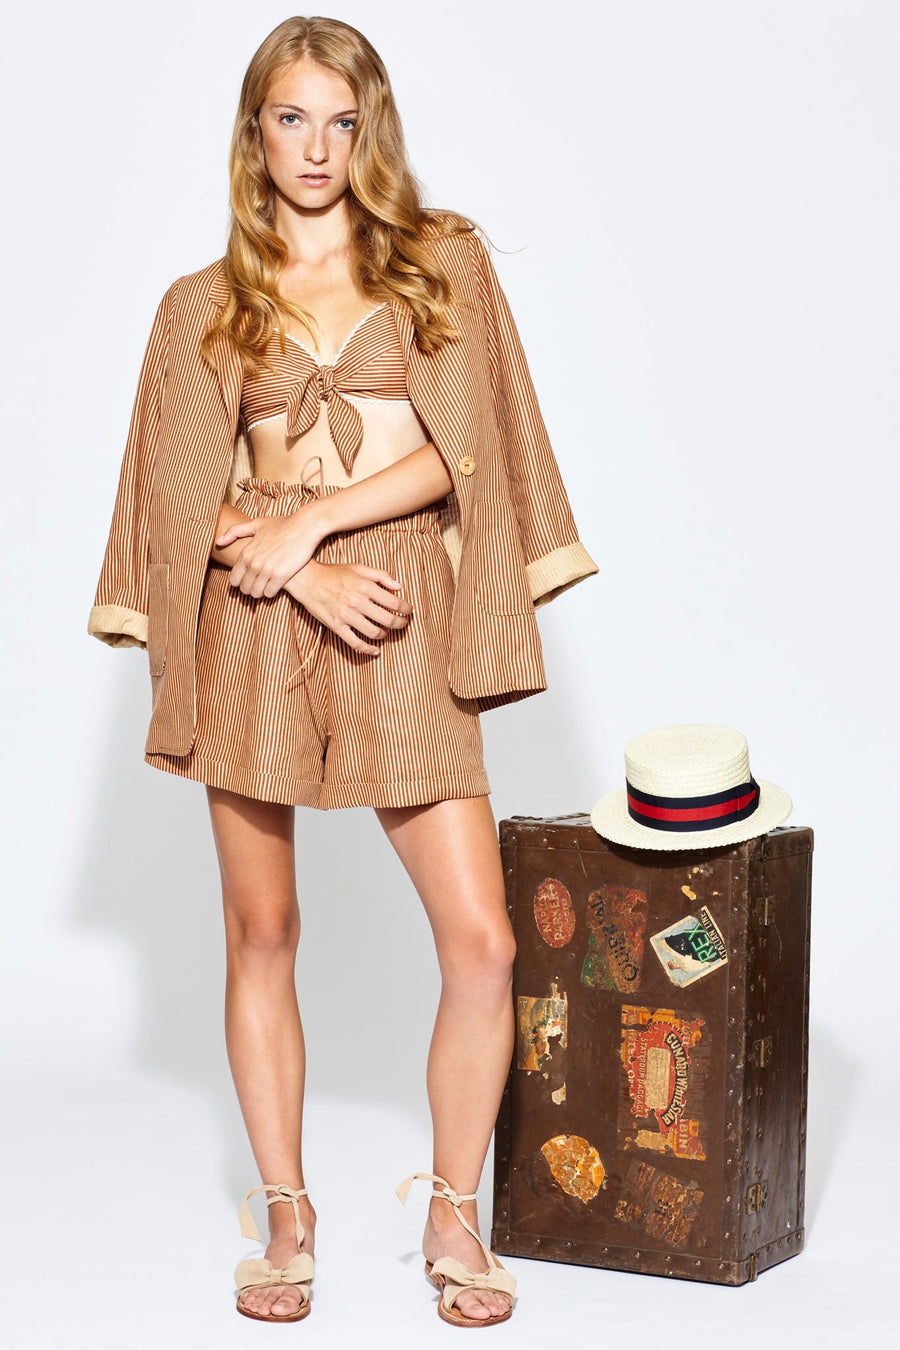 This is a photo of a woman a venetian striped three piece suit with a blazer, bralette, and shorts. She stands next to a rustic suitcase with a top hat on top of it.